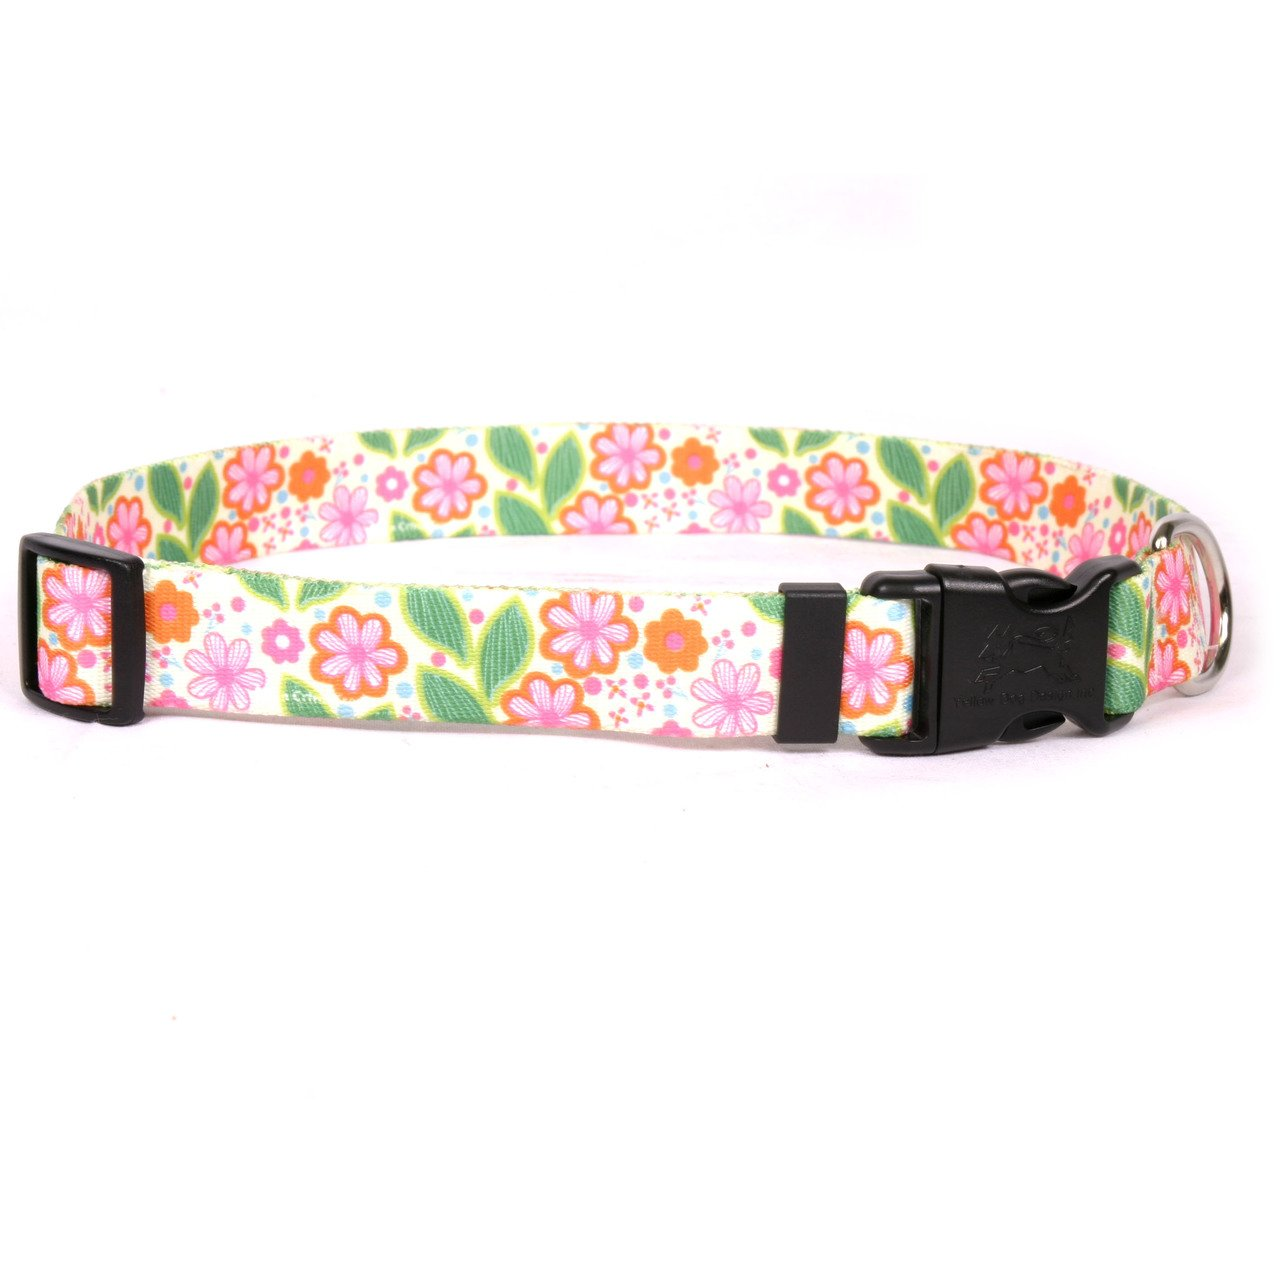 Yellow Dog Design Flower Patch Dog Collar 3/8 Wide And Fits Neck 4 To 9''